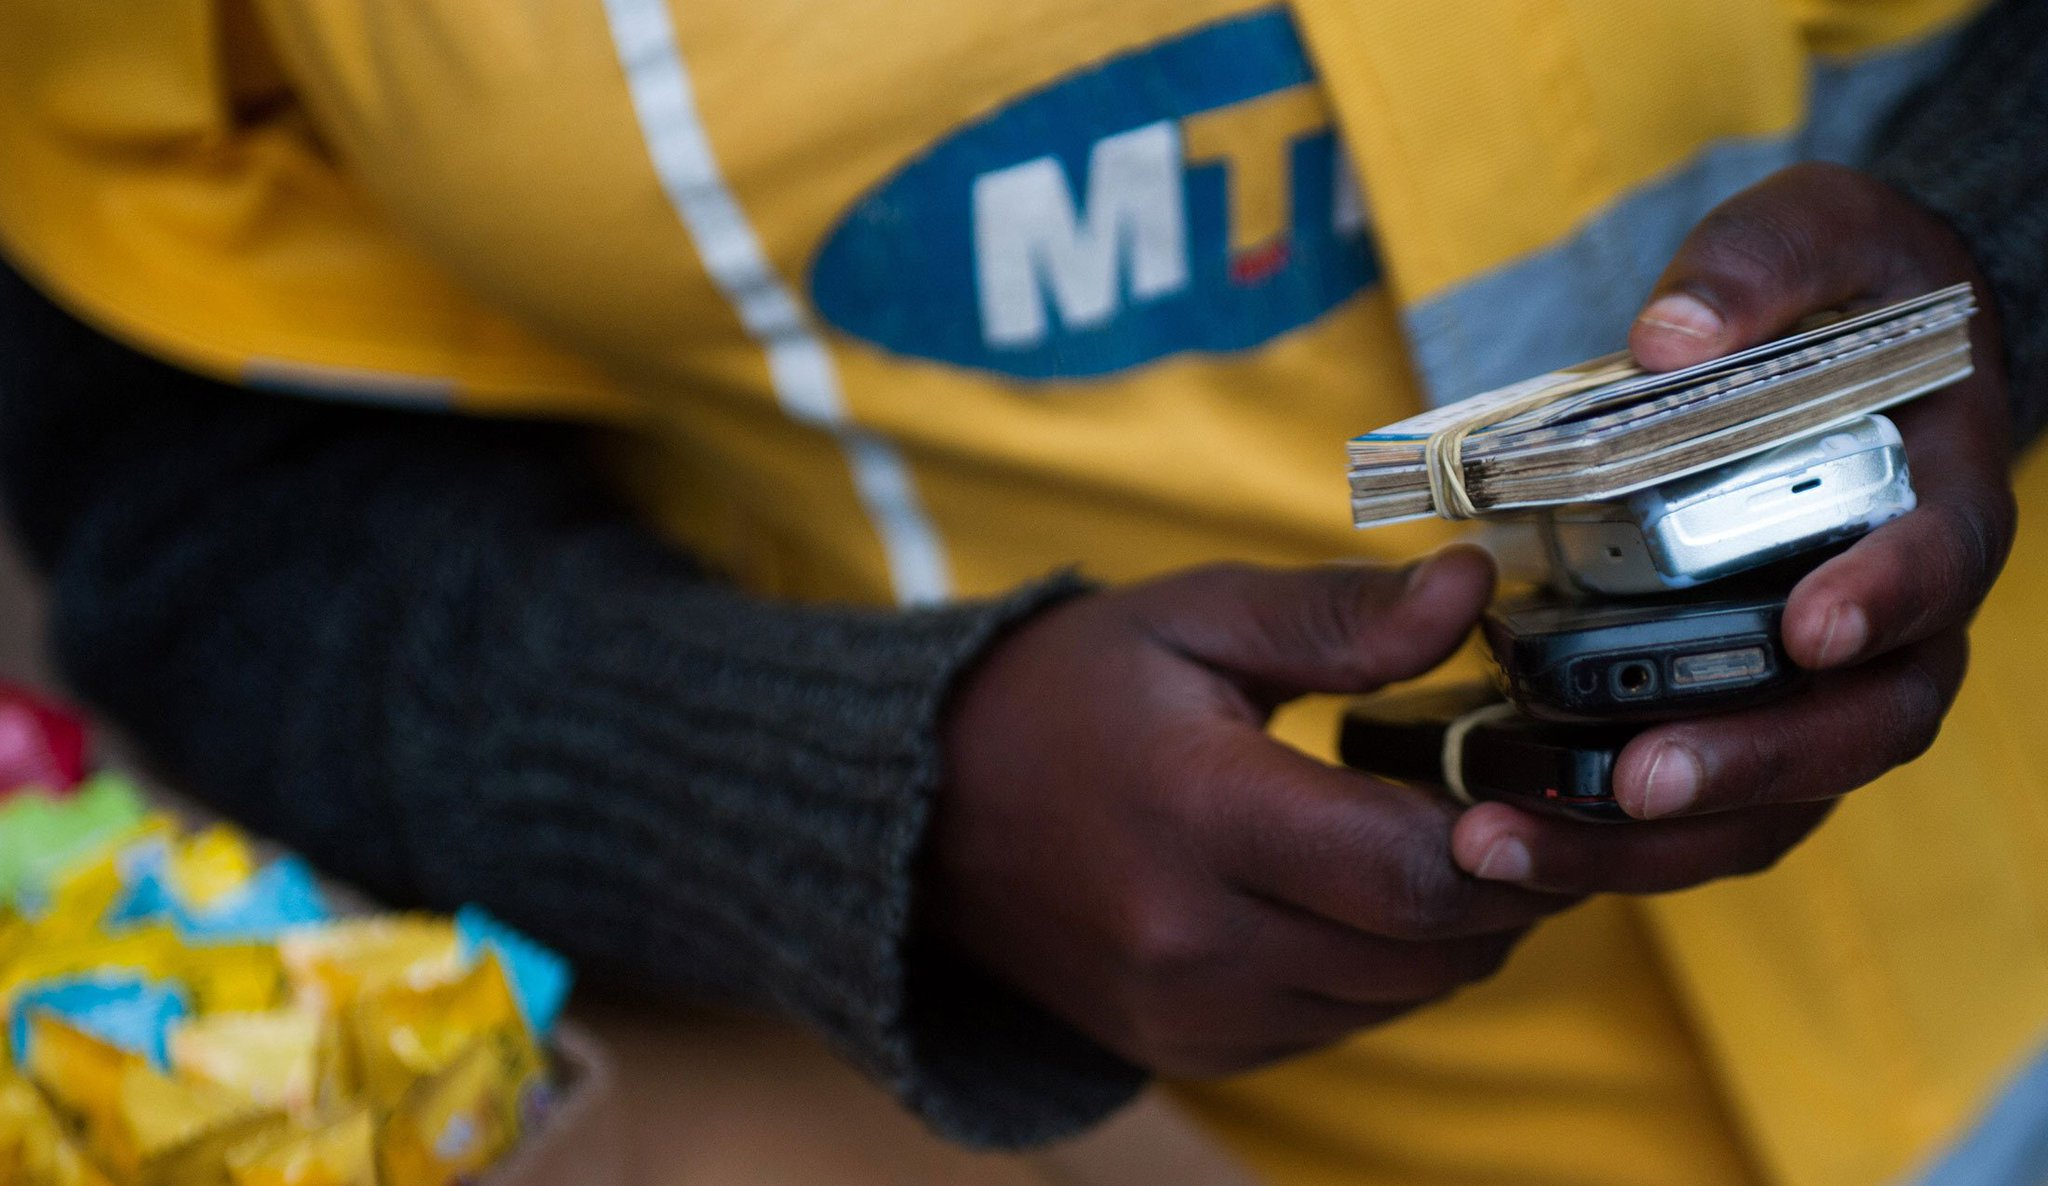 Telecoms giant MTN may have moved above $14 billion from Nigeria https://t.co/5apeAGs6bm https://t.co/3ipcPtTpxa